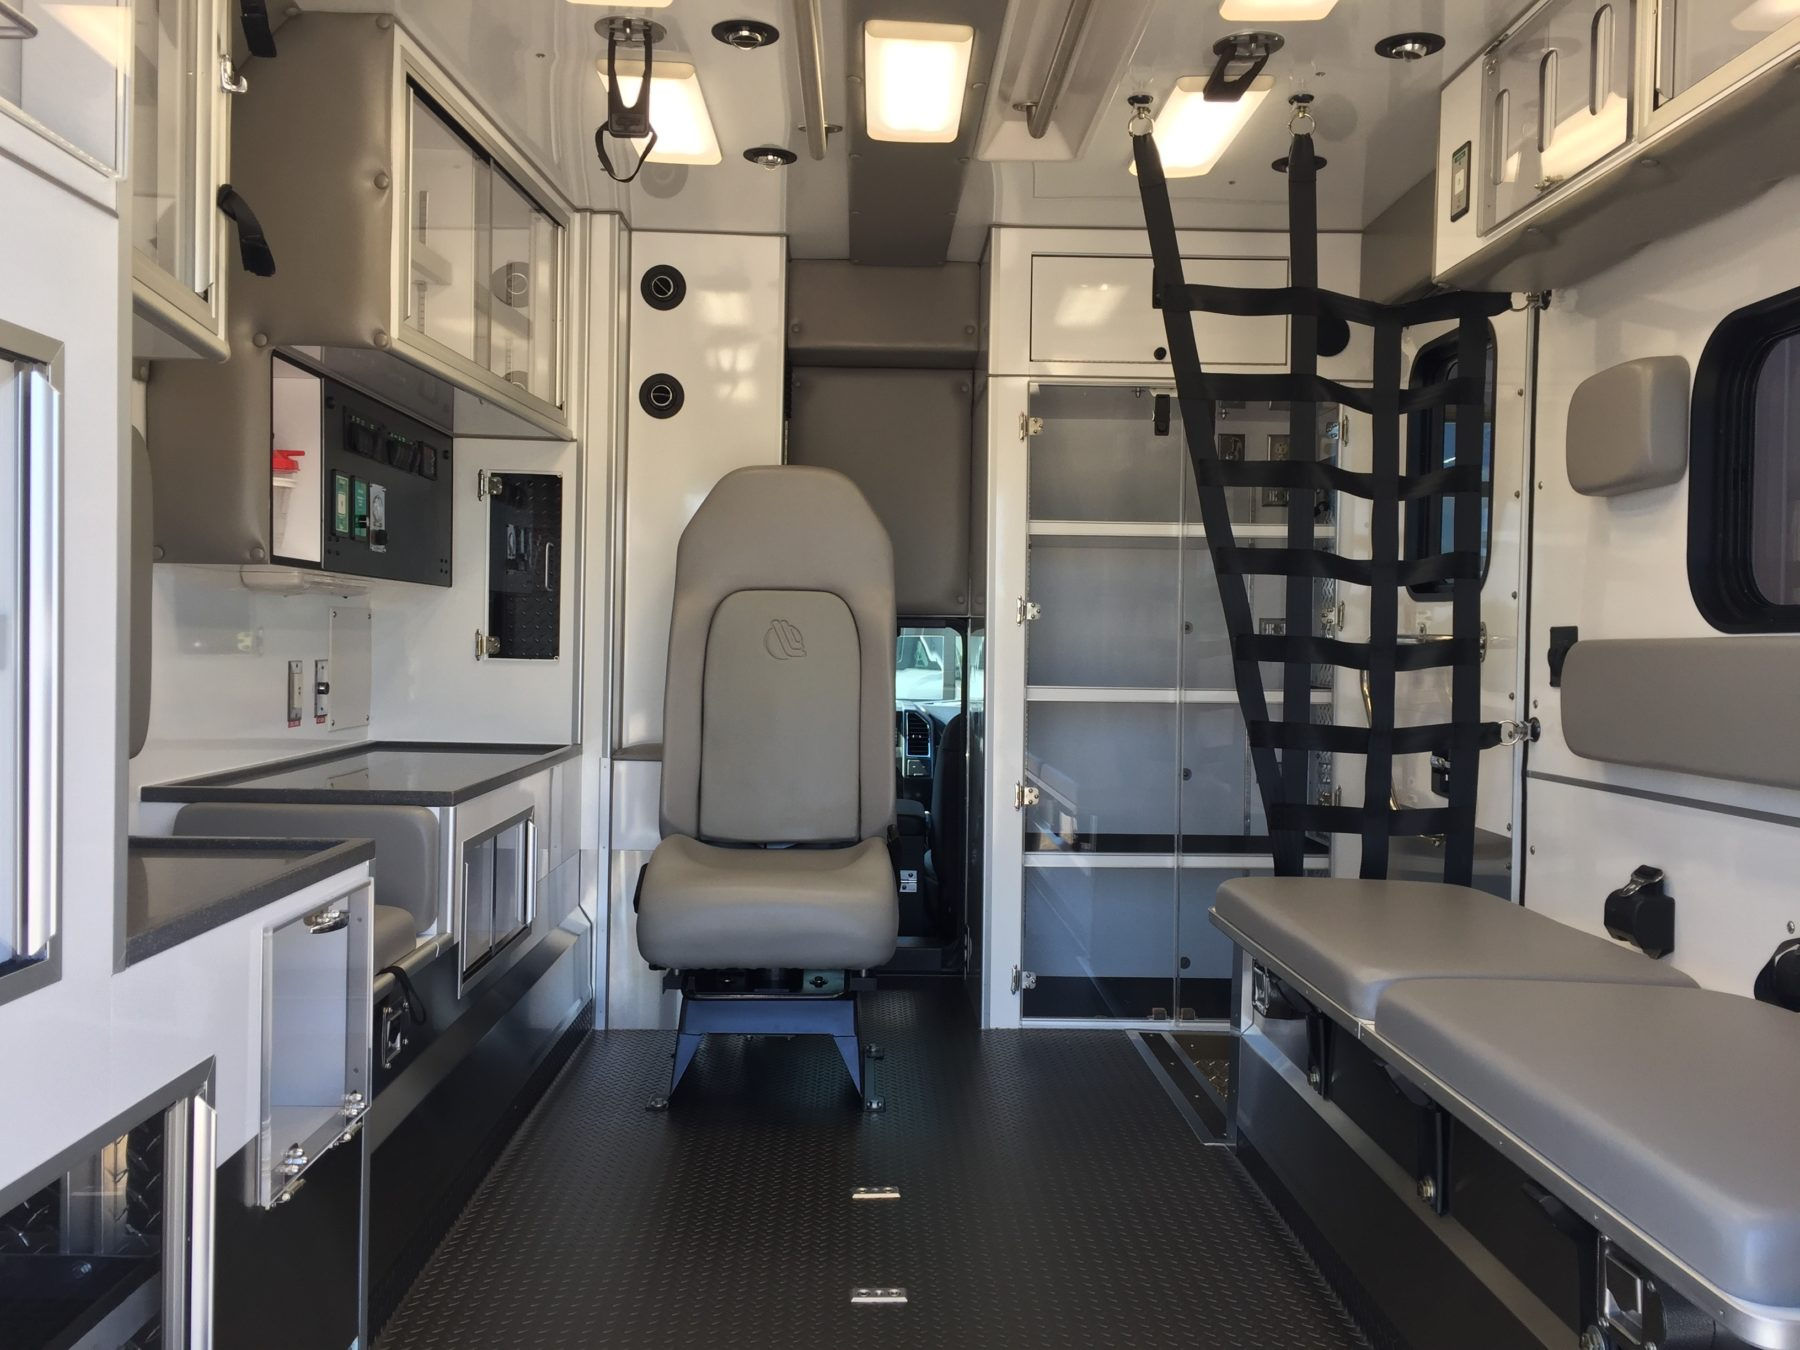 2018 Ford F350 4x4 Type 1 Ambulance For Sale – Picture 2